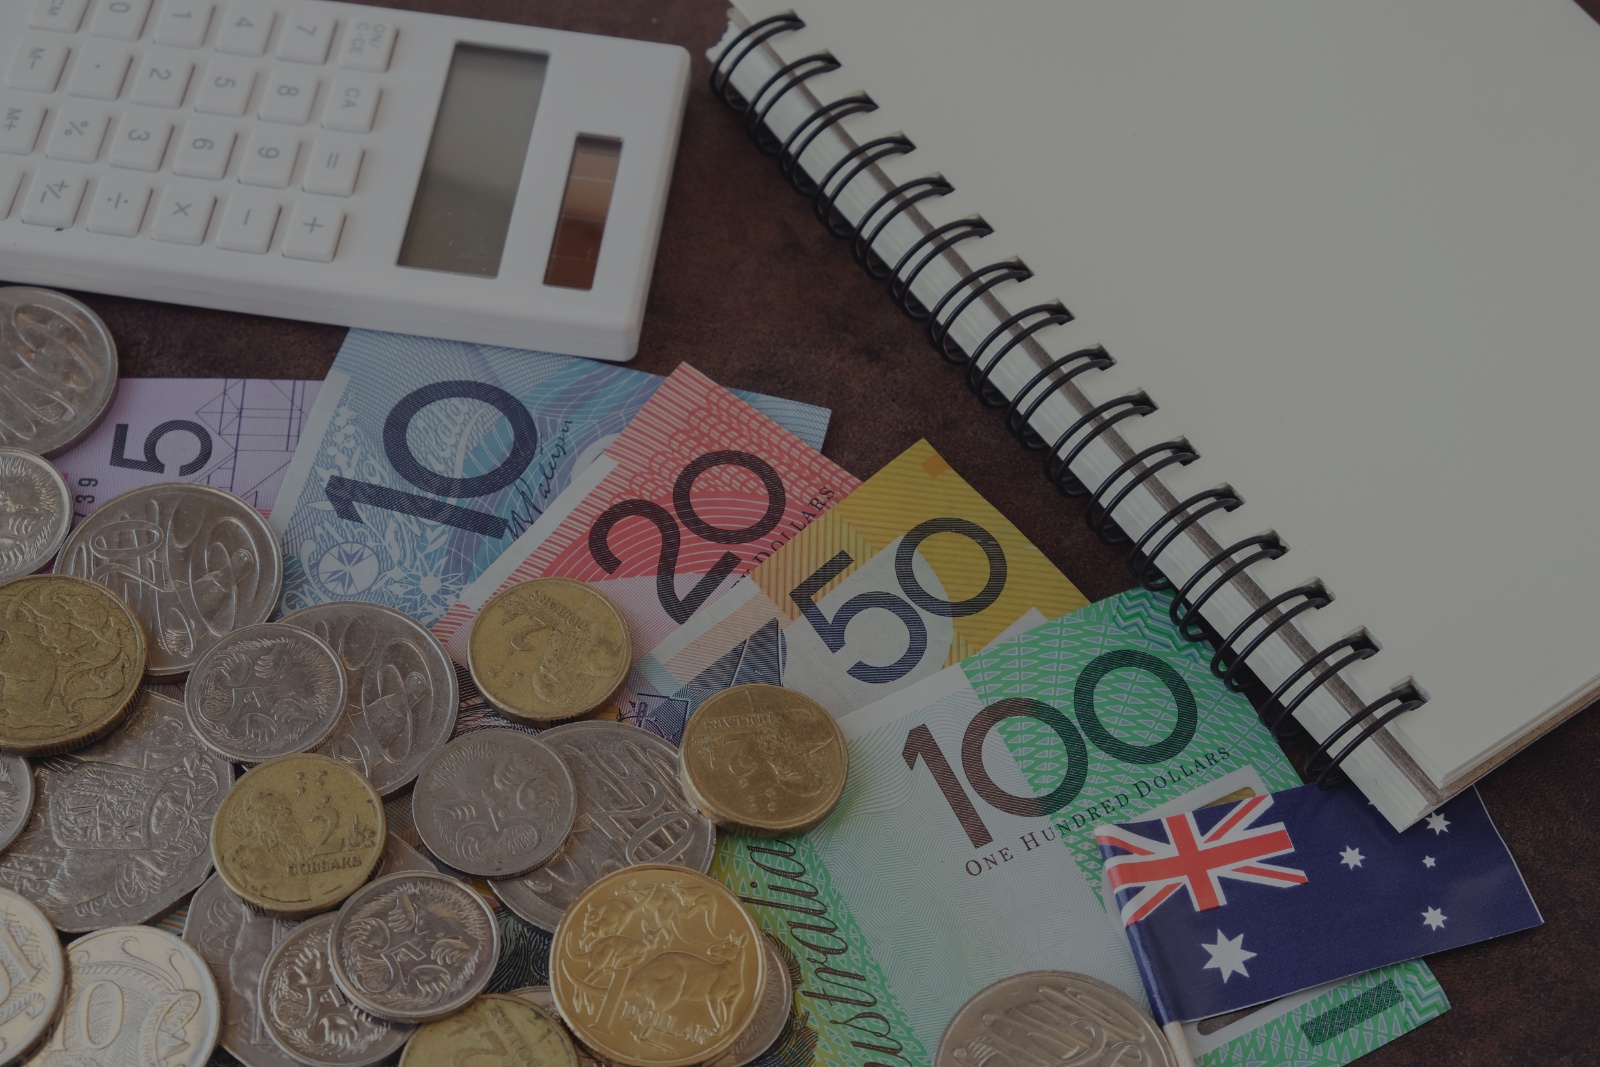 covid-19, business, relief payments,support package, landlords, tenants, workers, NSW, lockdown, ivy law group, commercial lawyer, business lawyer, business support, business grants